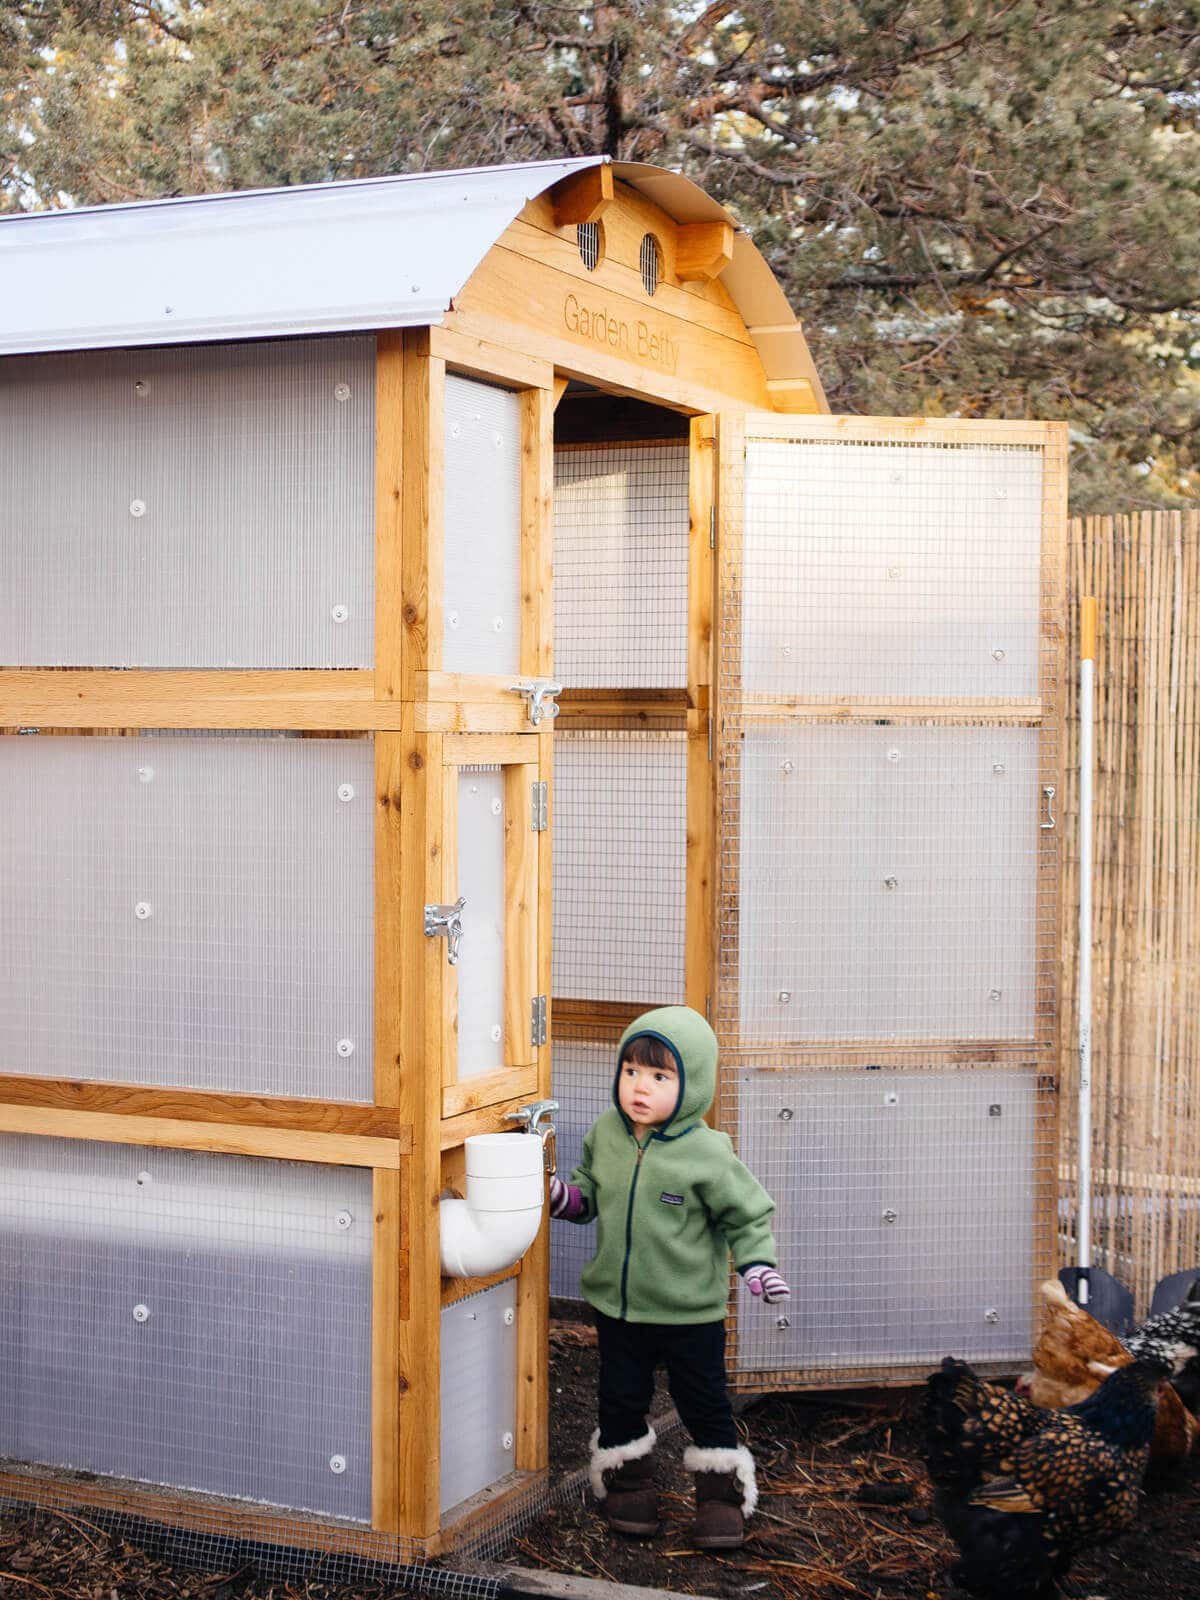 A chicken coop stormproofed with translucent twinwall plastic panels